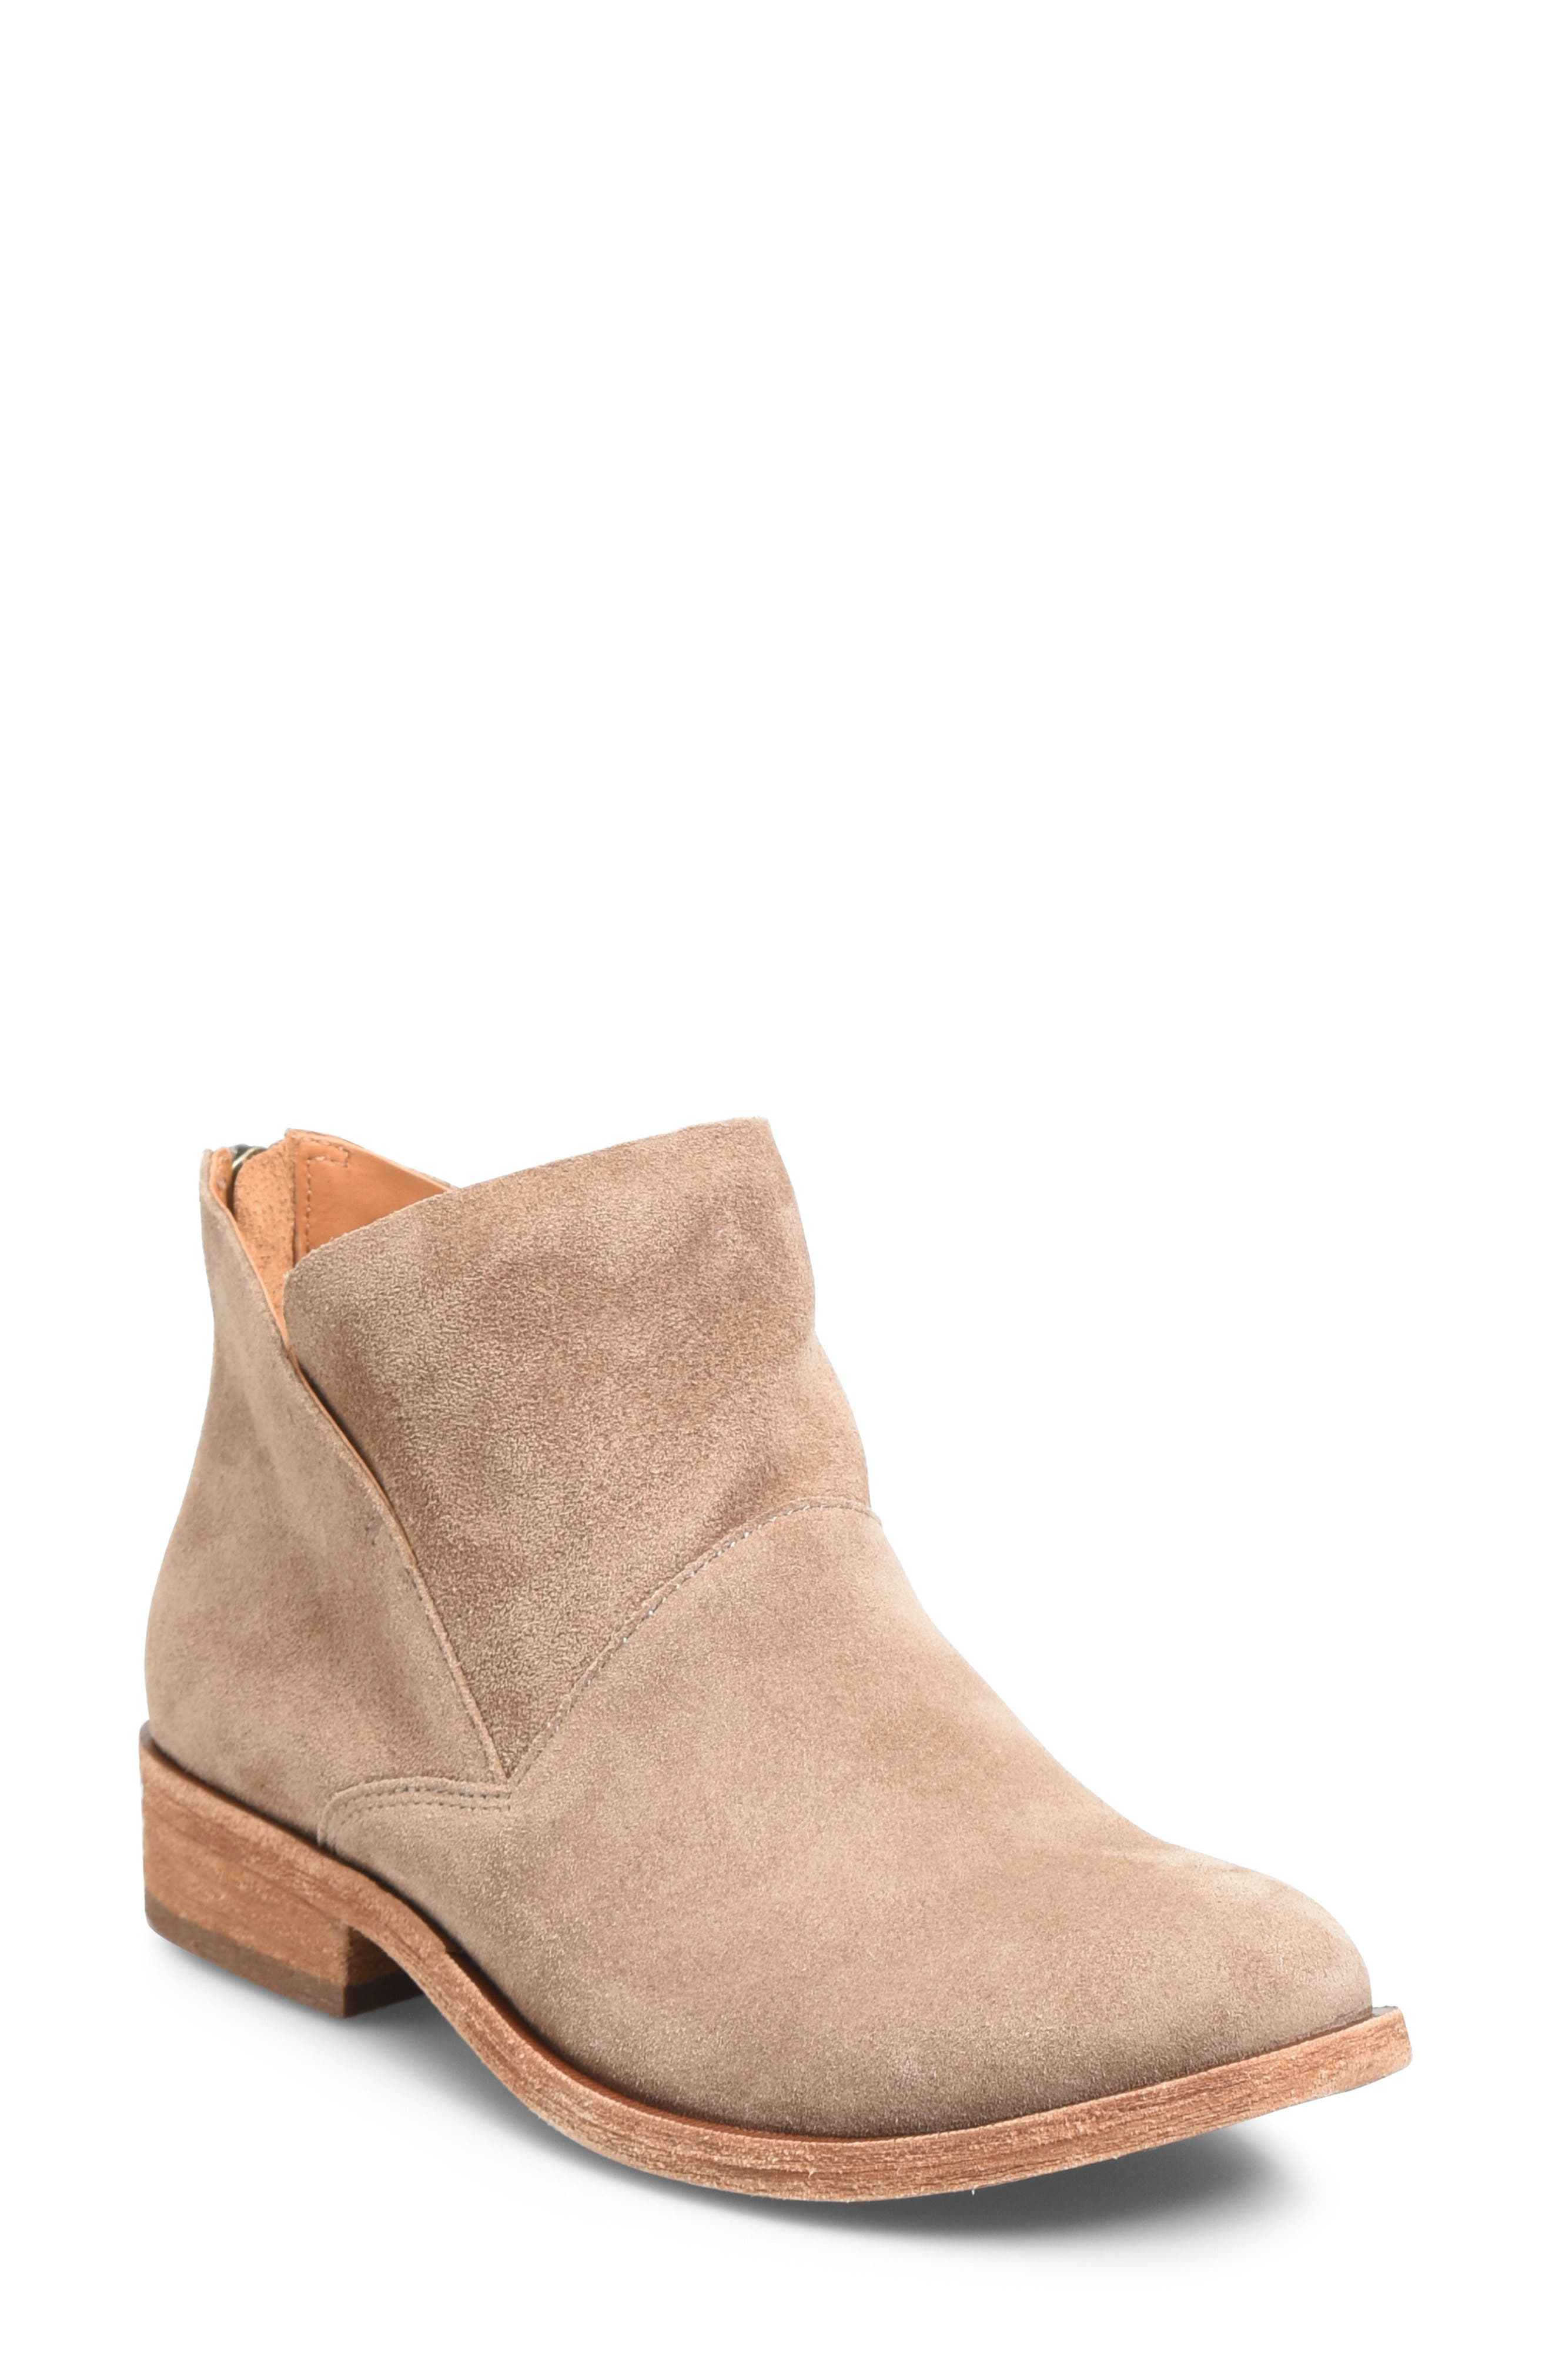 Ryder Ankle Boot,                         Main,                         color, TAUPE GREY SUEDE